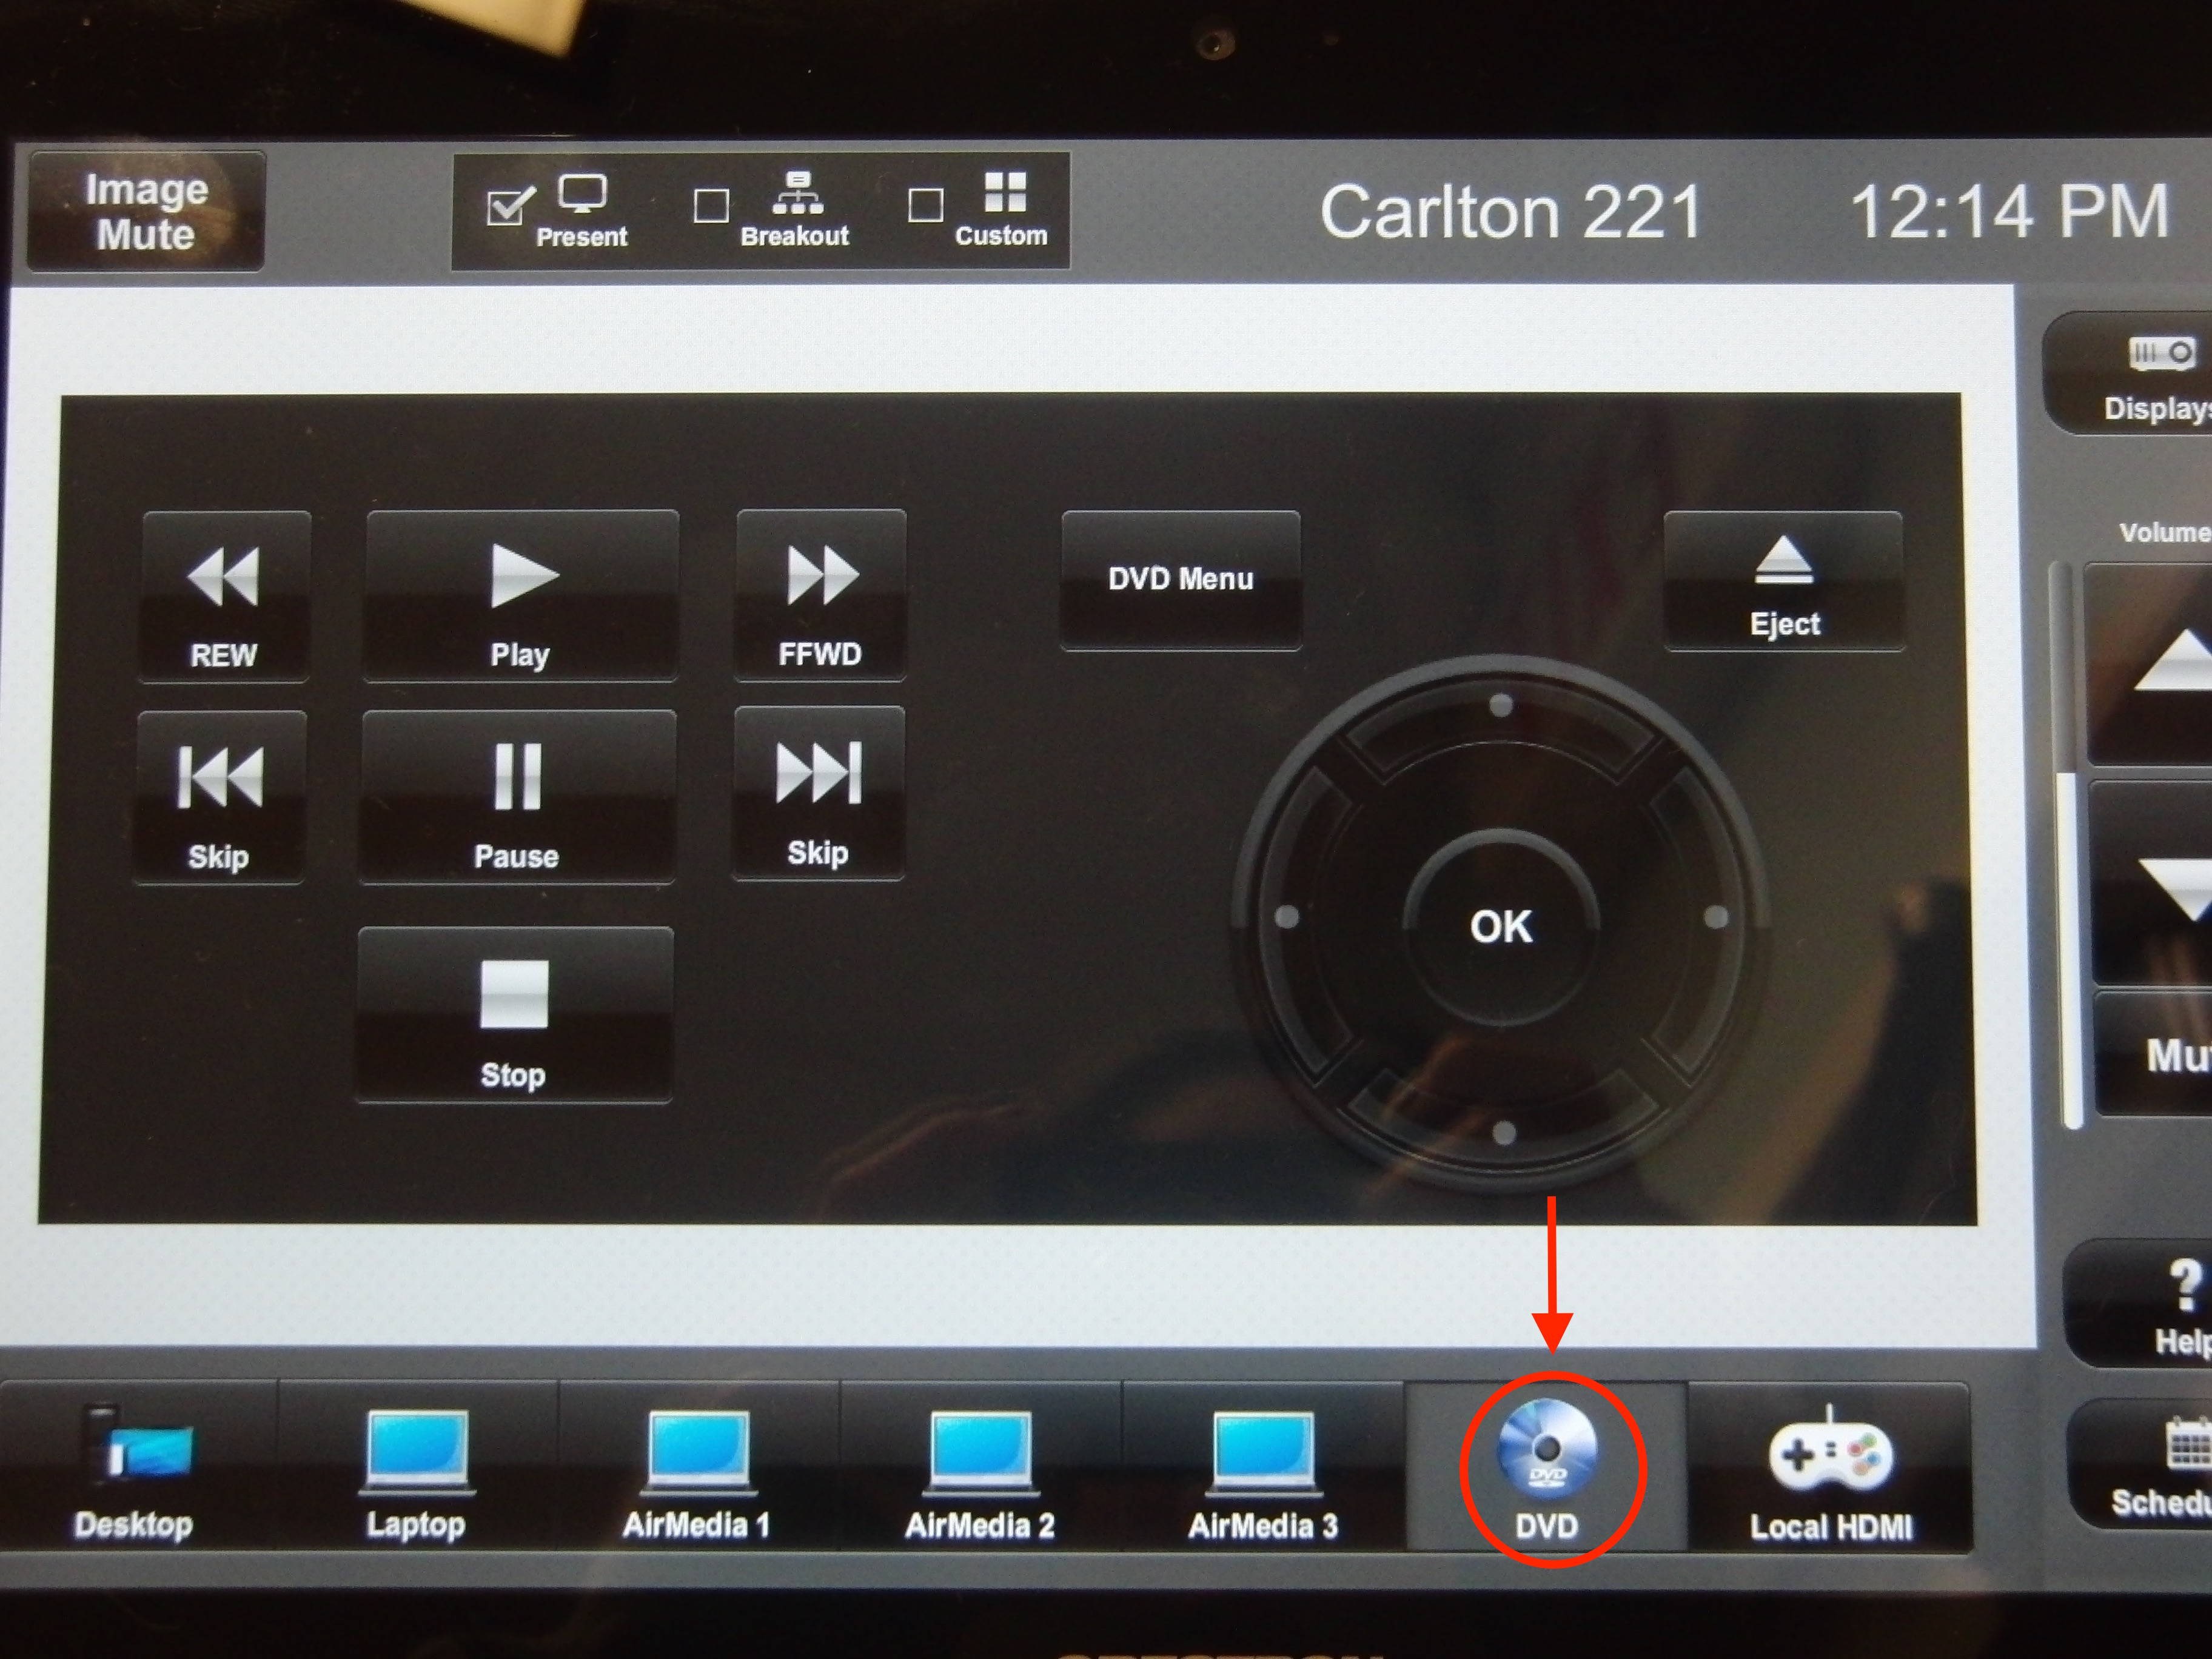 Photo of crestron control touch panel highlighting the DVD option